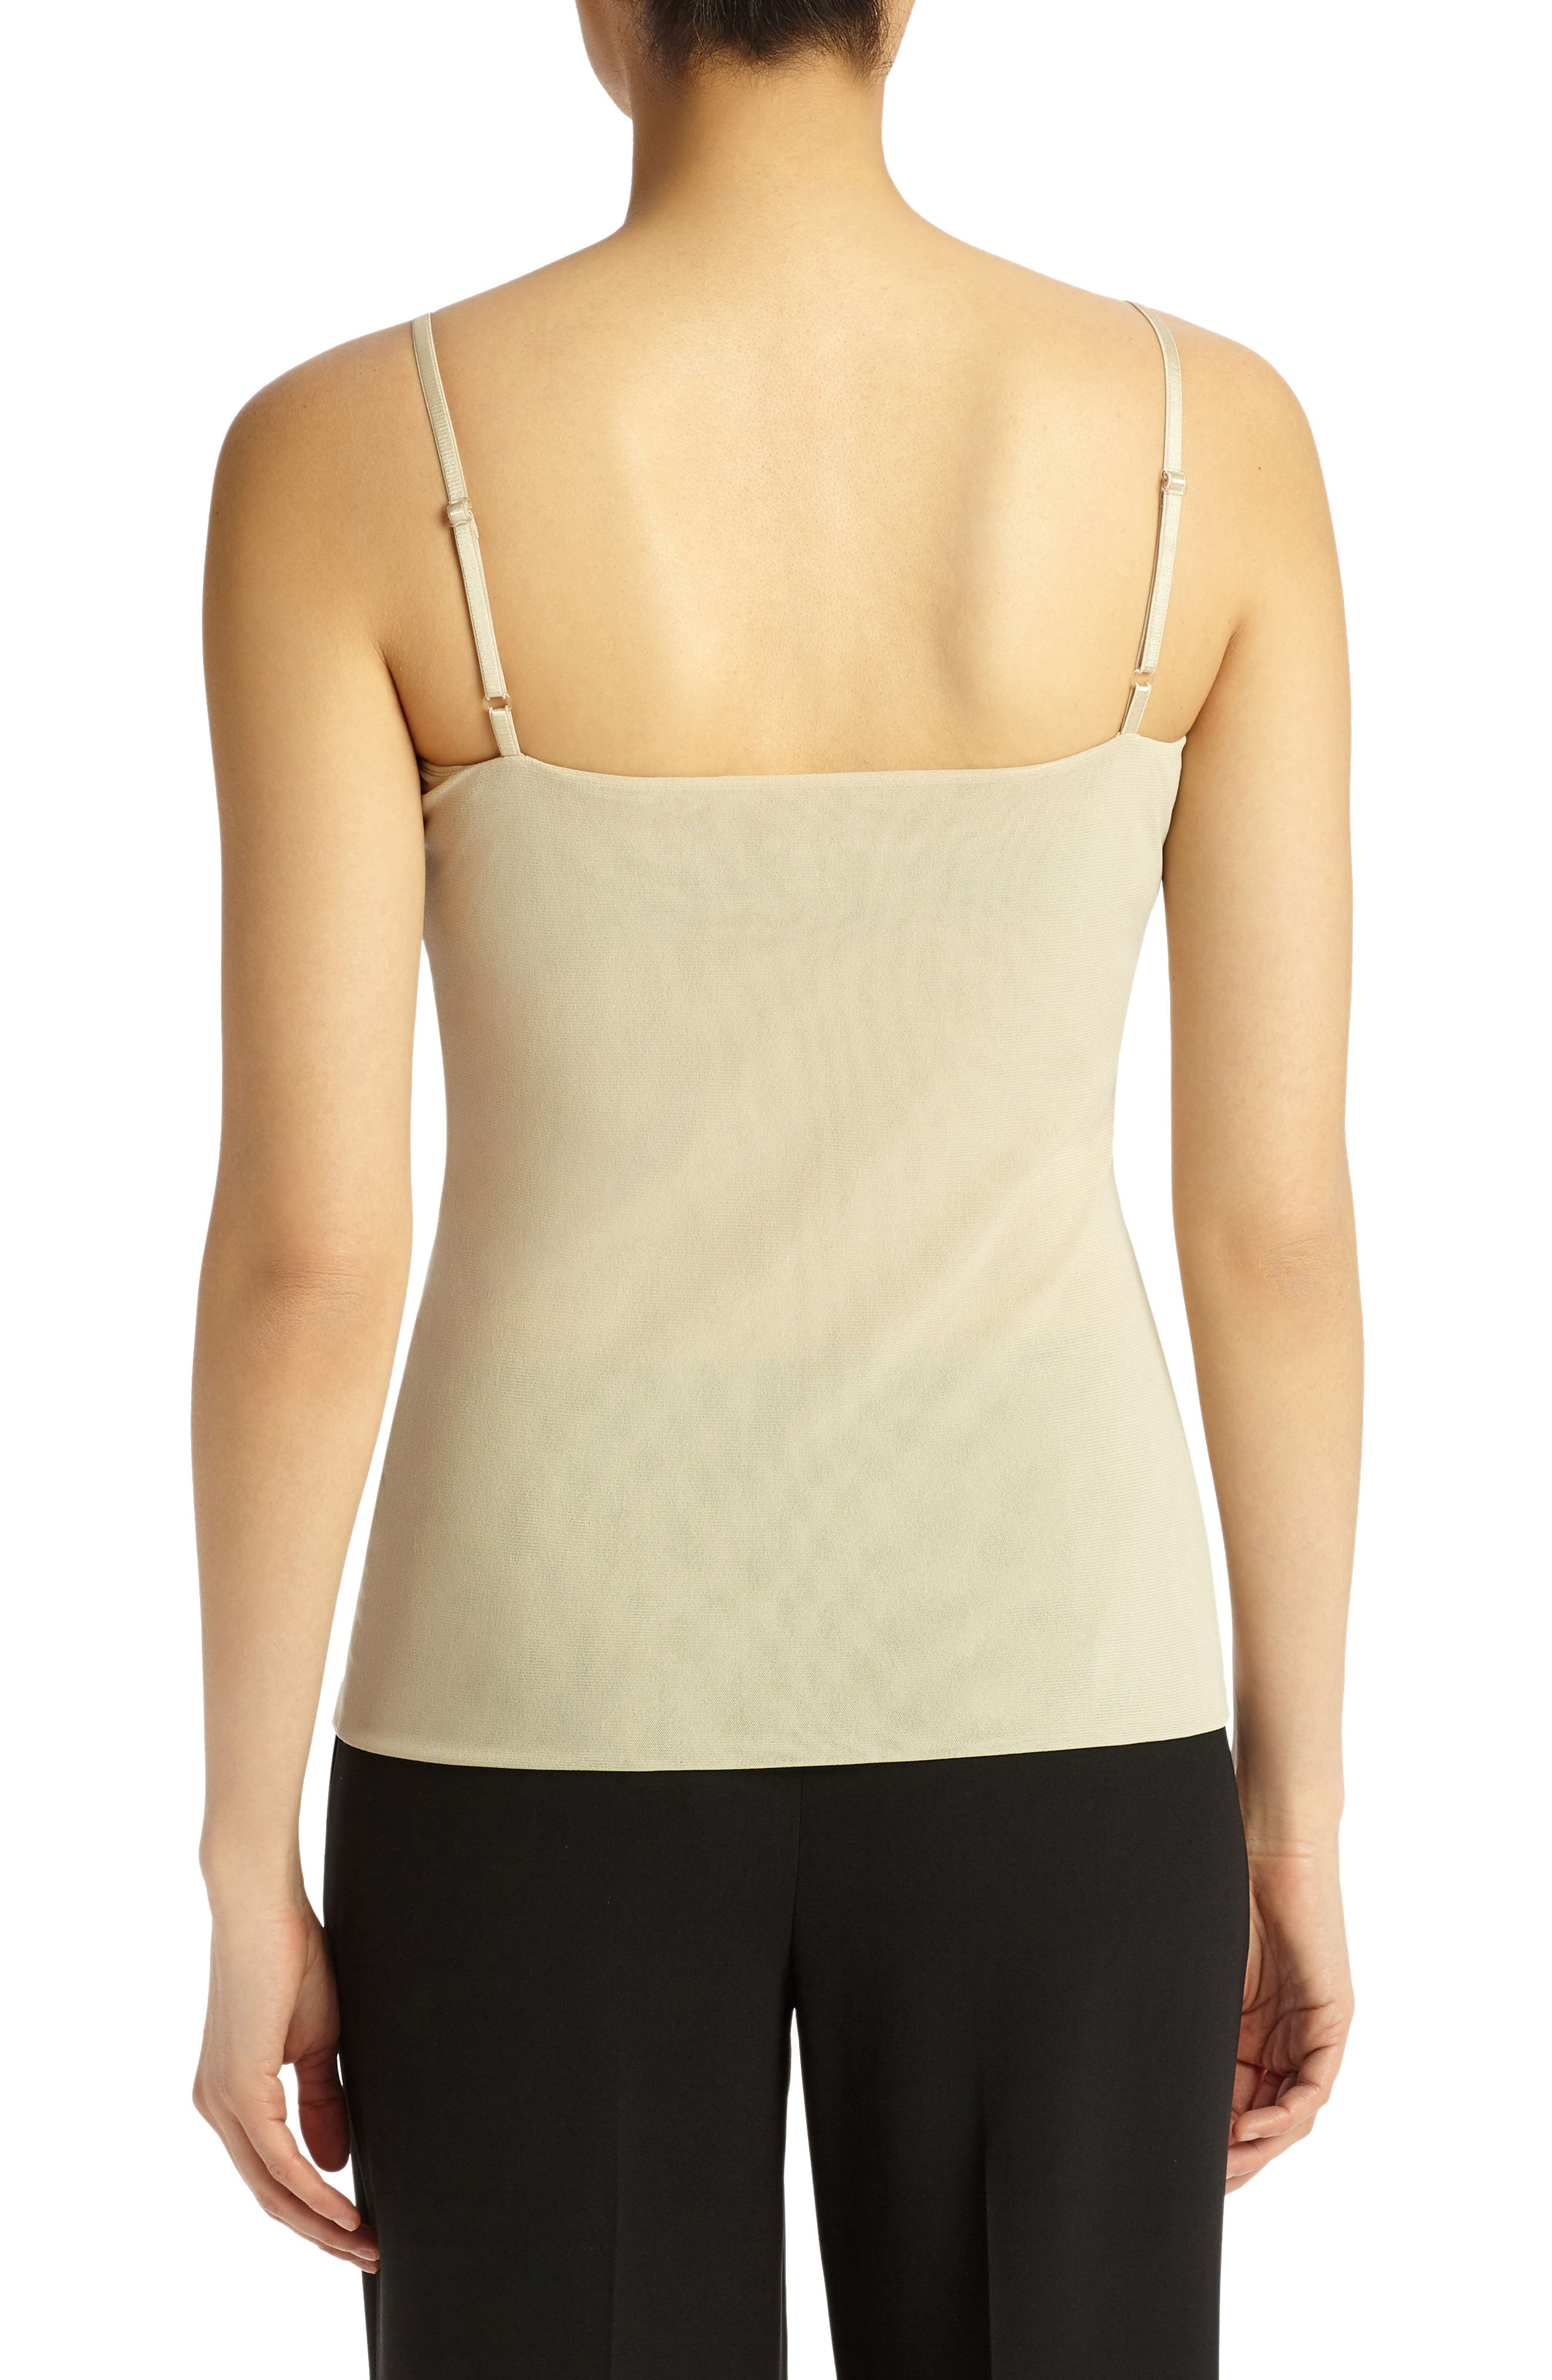 LAFAYETTE 148 NEW YORK,                             Mesh Jersey Camisole,                             Alternate thumbnail 2, color,                             KHAKI